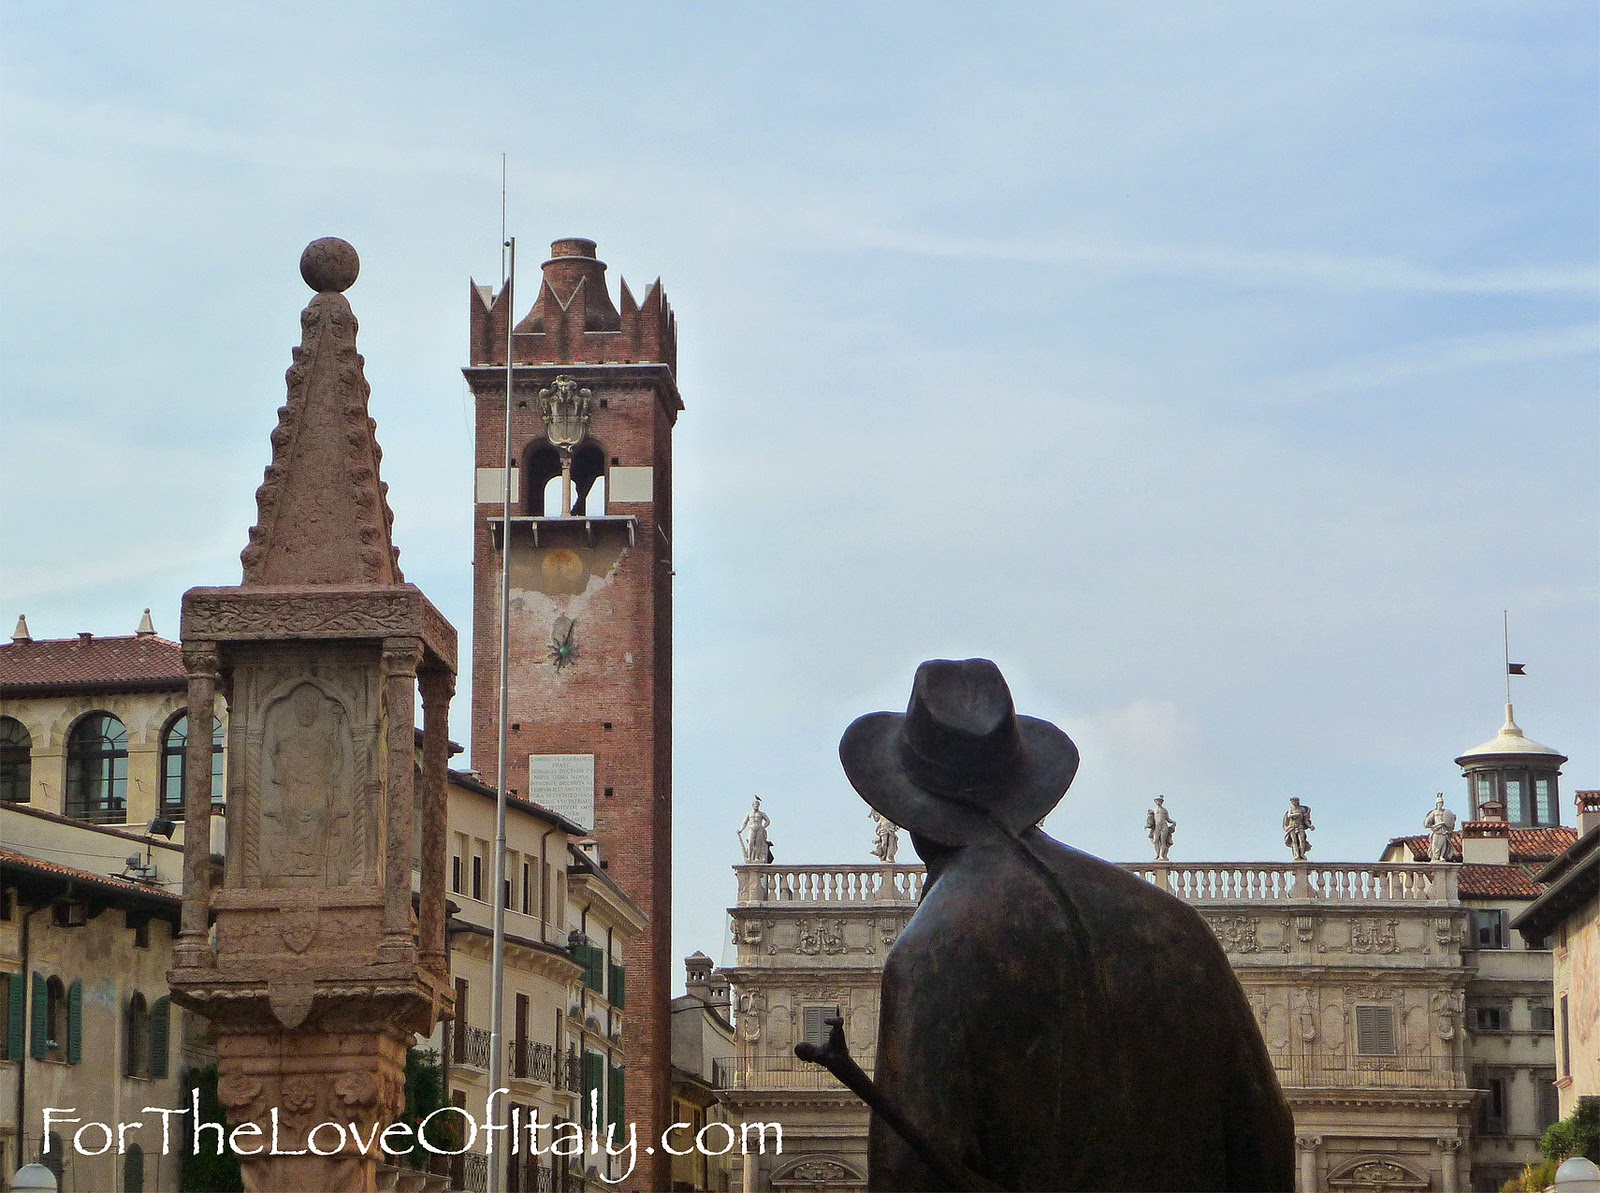 The Berto Barbarani Statue In Verona Italy